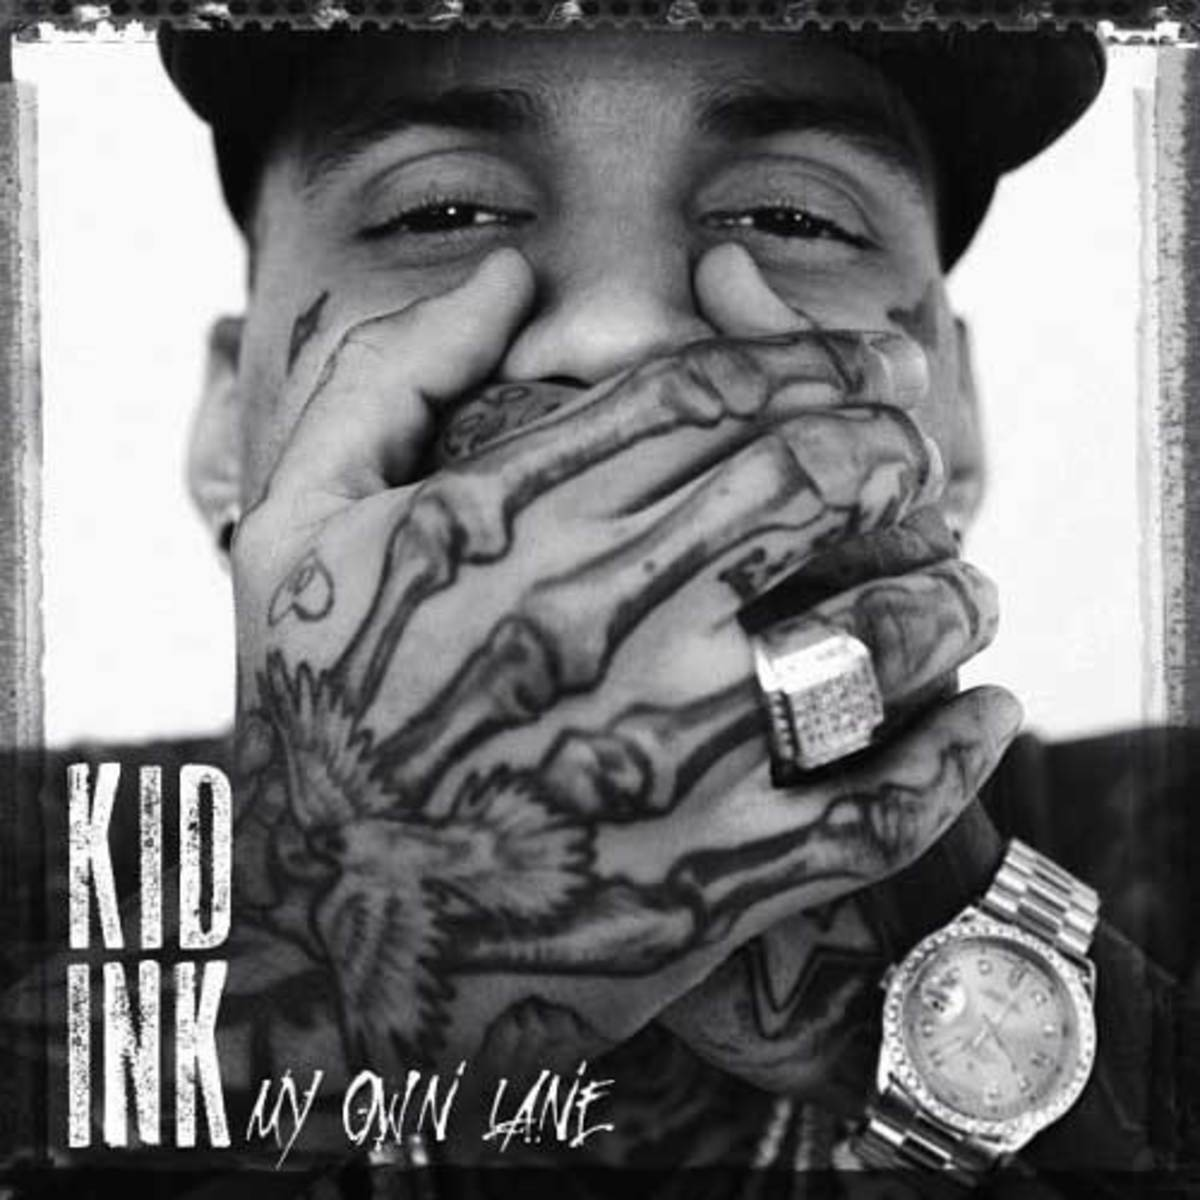 kid-ink-my-own-lane.jpg